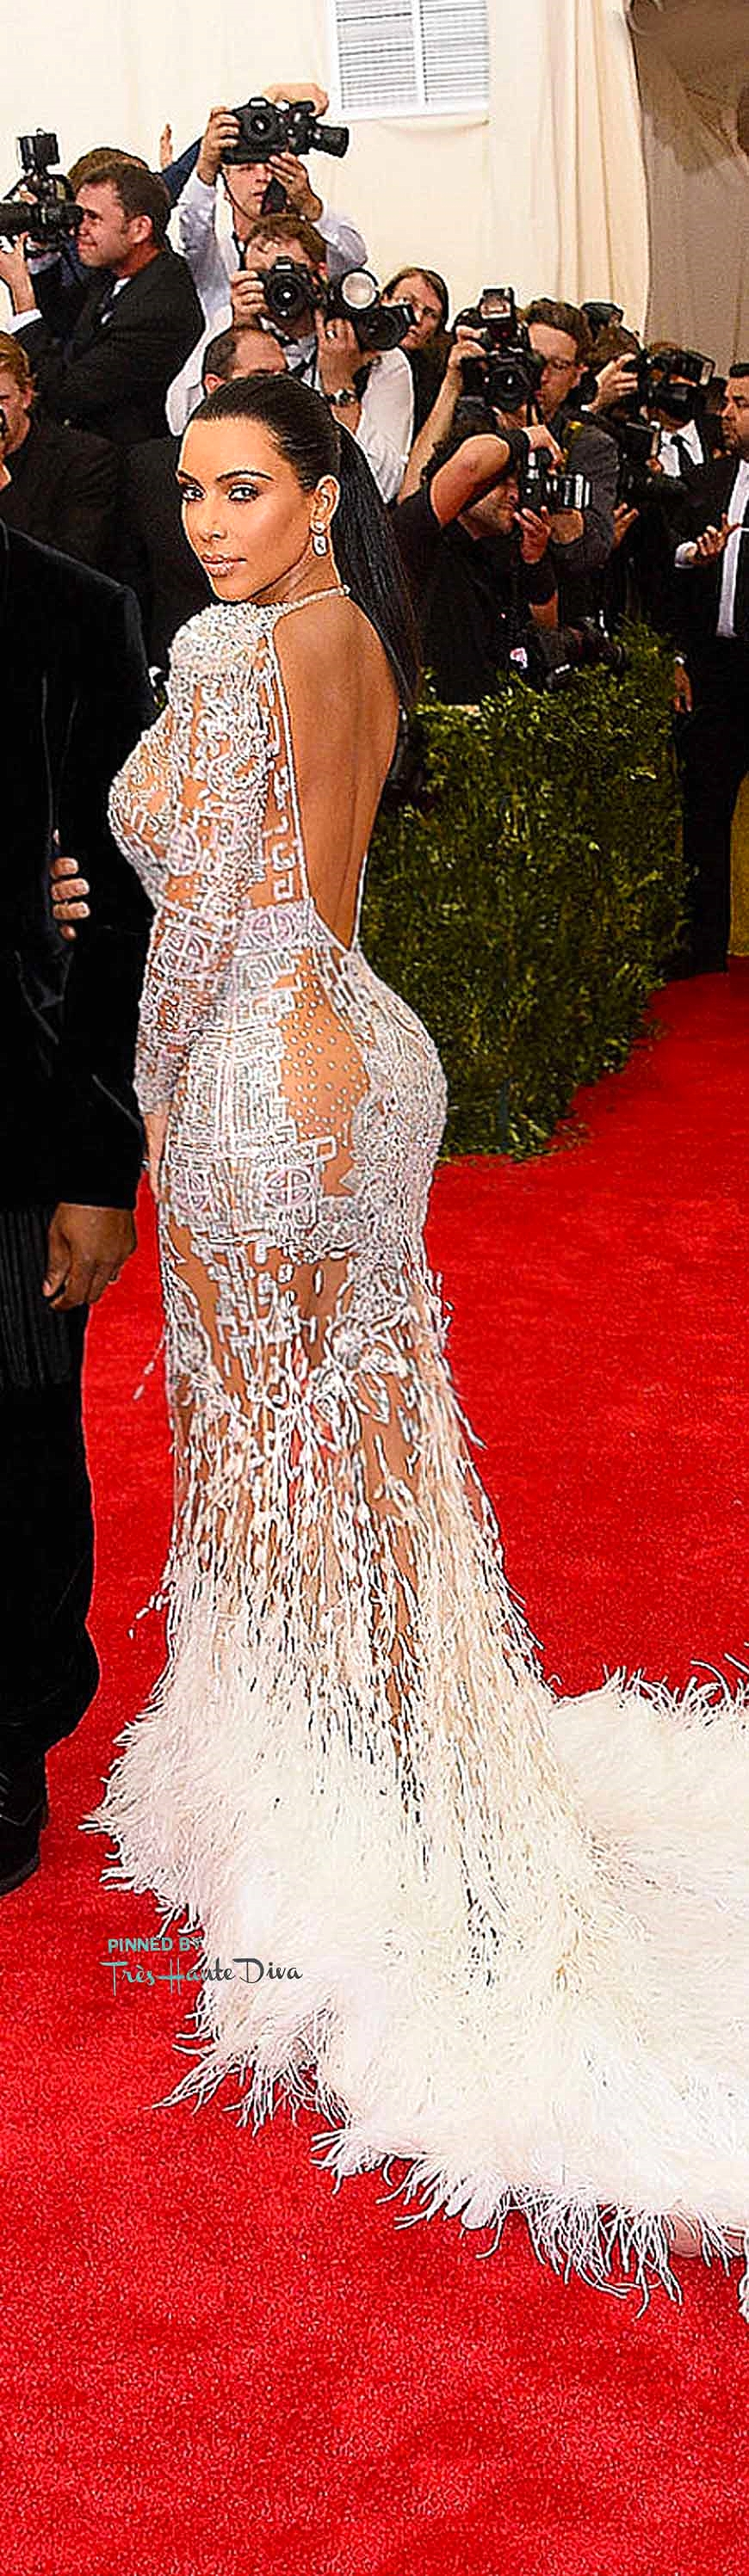 Kim Kardashian in Roberto Cavalli          Getty Images/ Larry Busacca